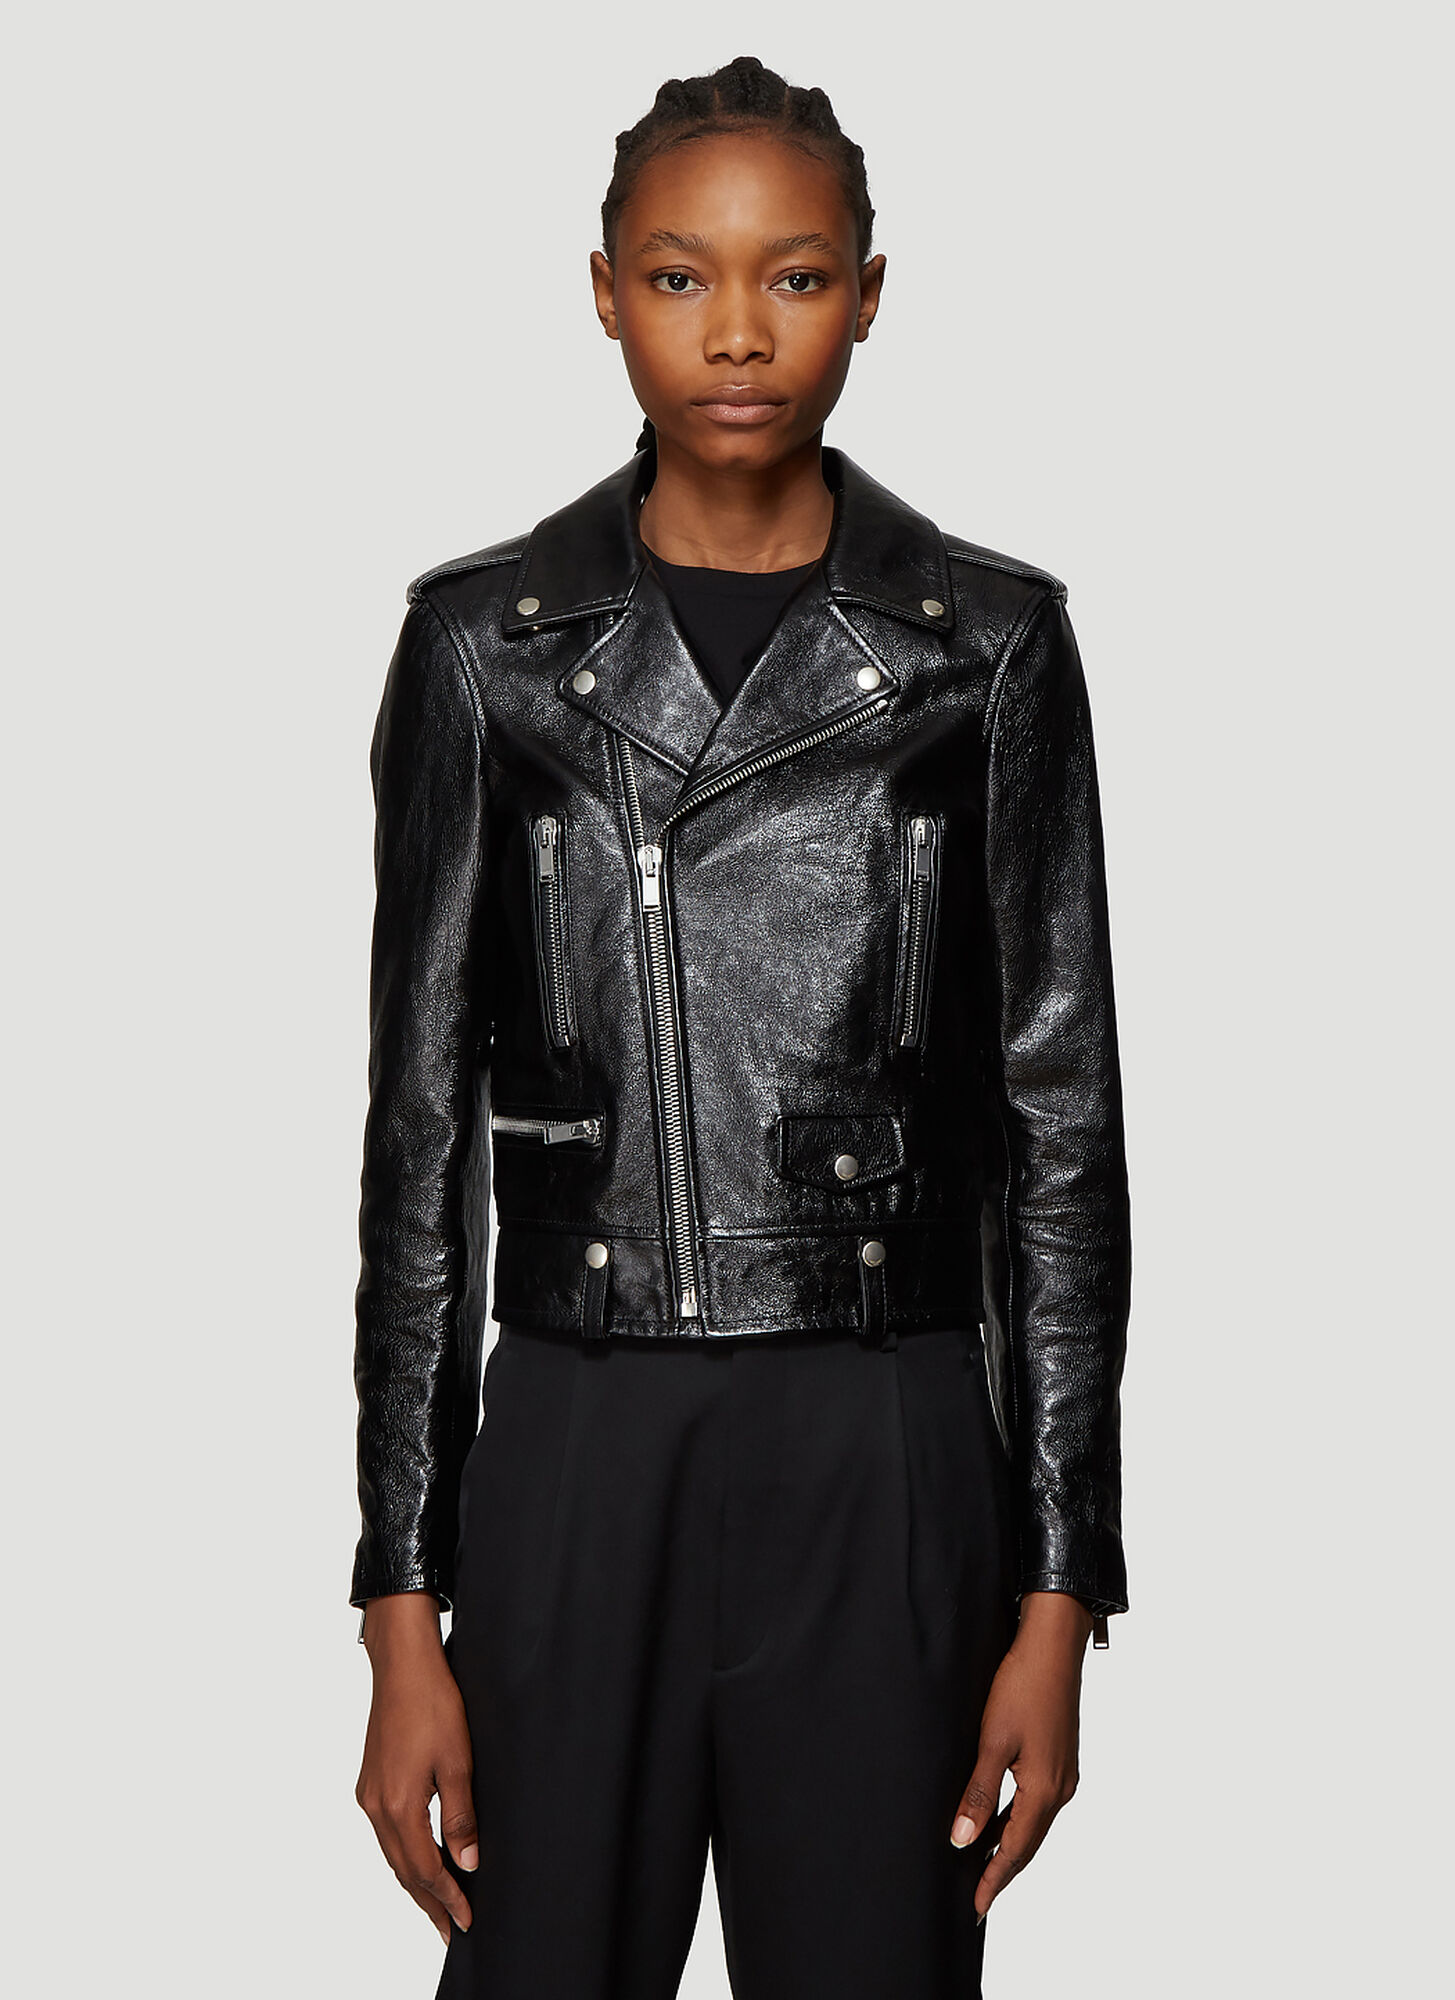 Saint Laurent Motorcycle Leather Jacket in Black